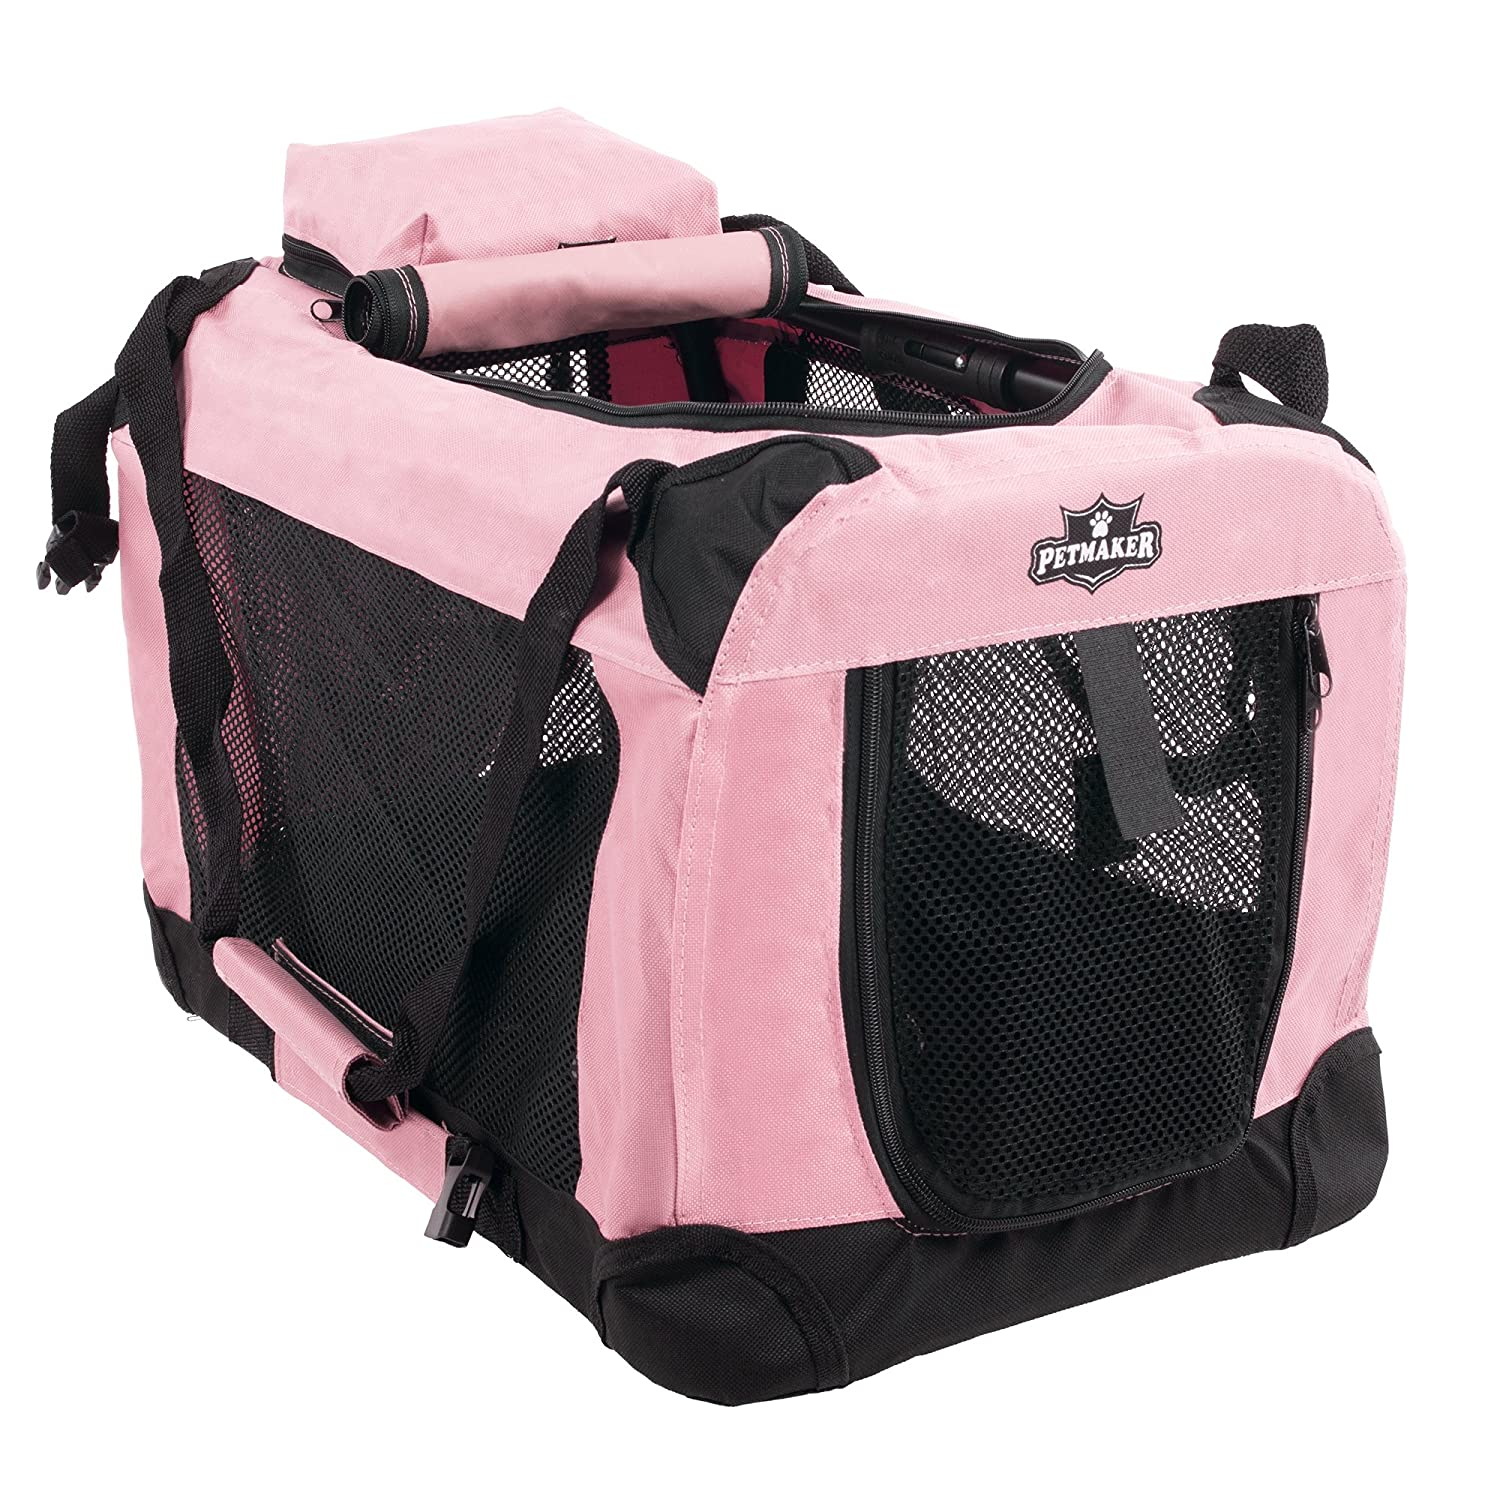 PETMAKER Portable Soft Sided Pet Crate, 20  x 12 , Pink